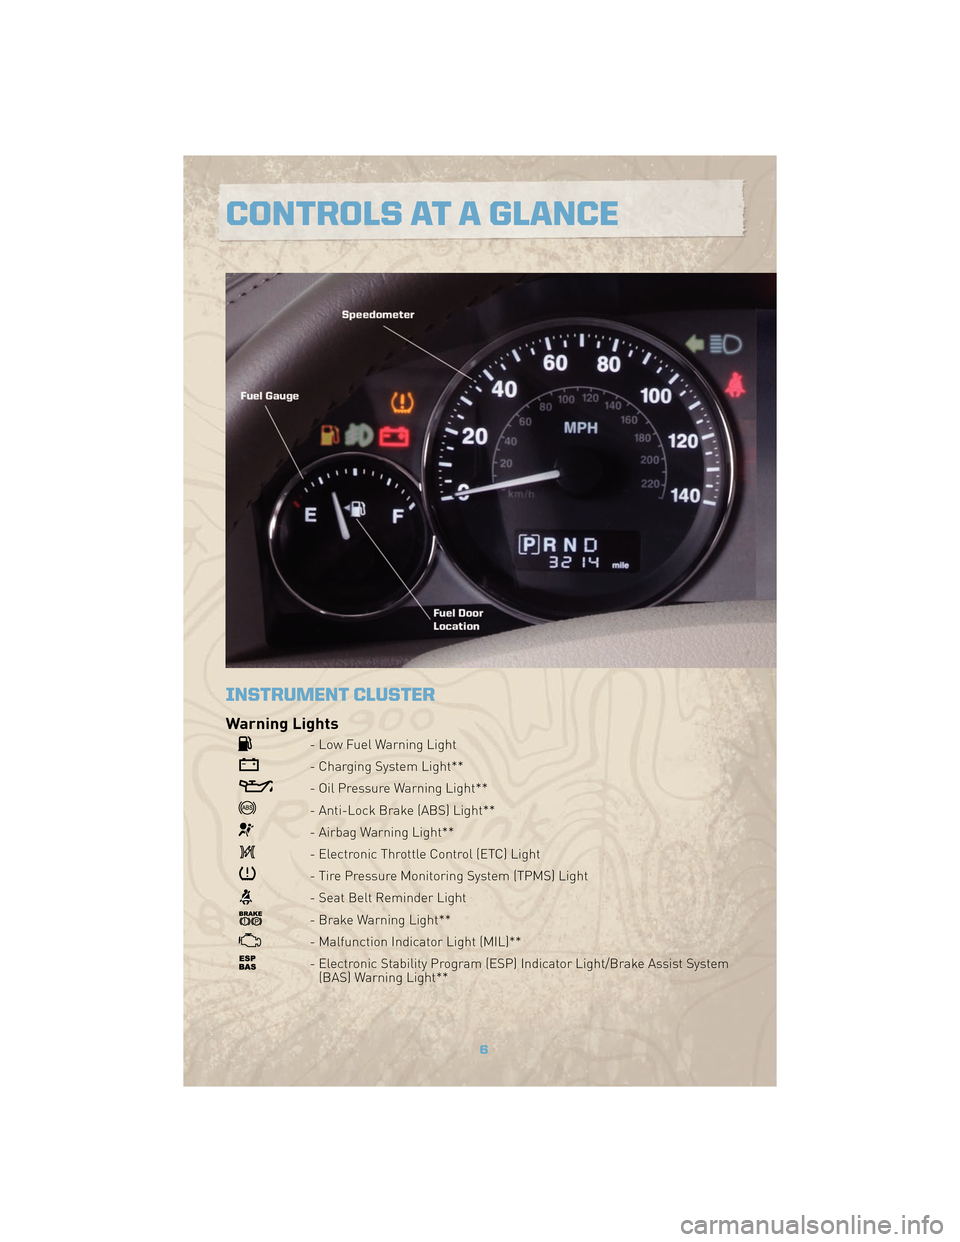 JEEP COMMANDER 2010 1.G User Guide, Page 8